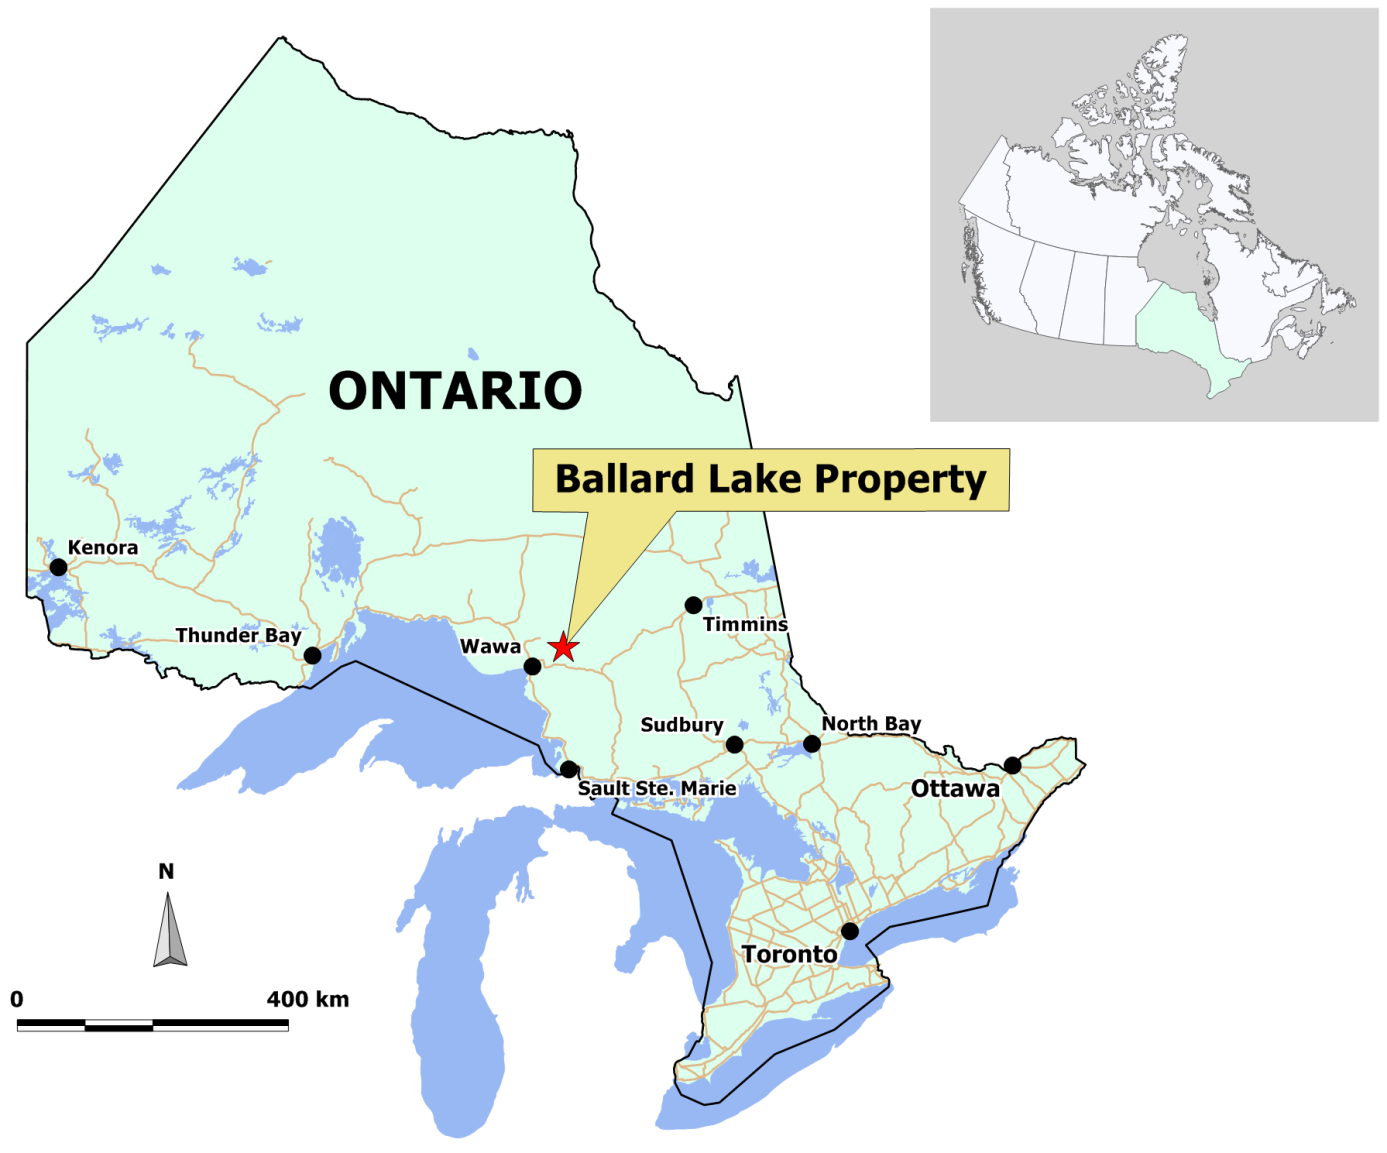 sault ste marie canada map Rt Minerals Corp Ballard Lake Property Map And Photo Gallery